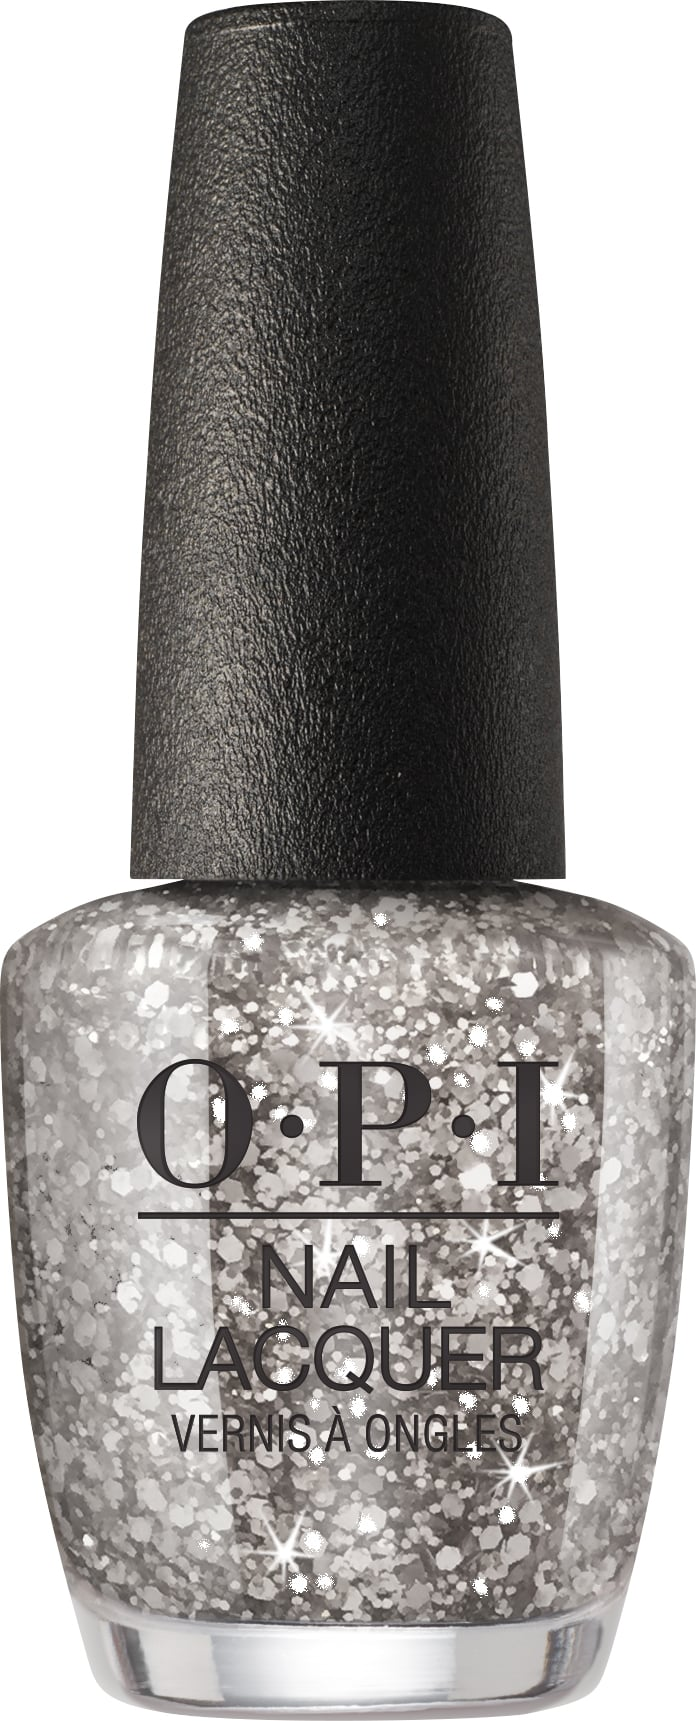 Opi The Nutcracker And Four Realms Collection In Dreams On A Silver Platter Opi Teamed Up With Disney To Get You In The Holiday Spirit Popsugar Beauty Photo 8